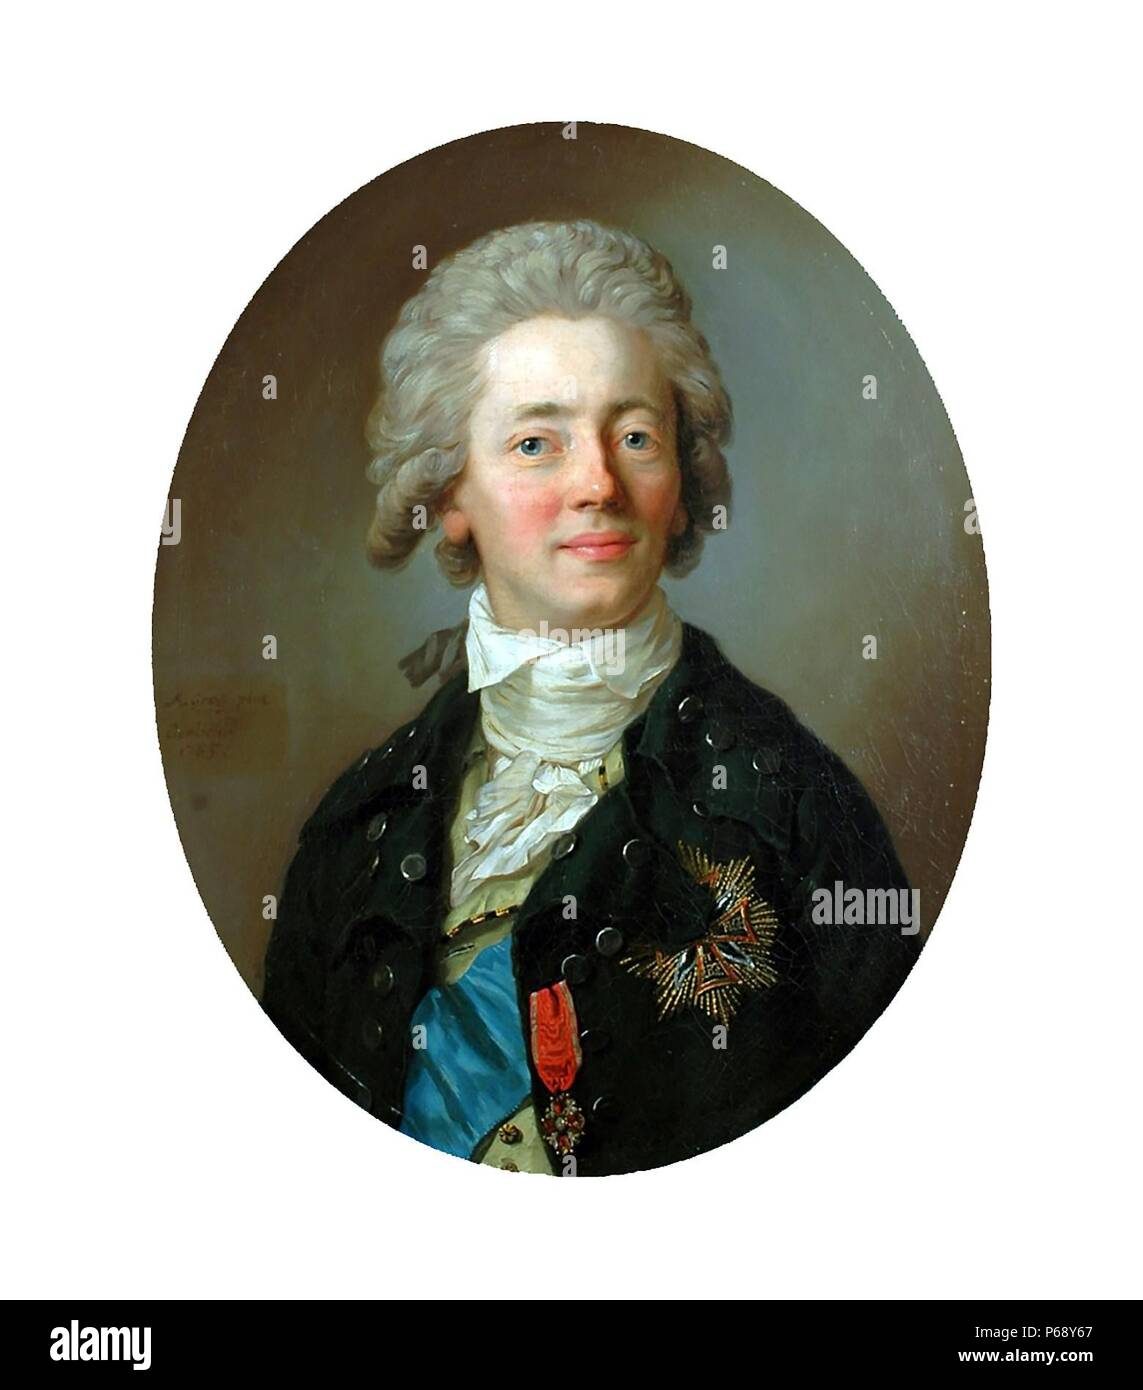 Portrait of Count Stanislaw Kostka Potocki (1755-1821) Polish noble, Politician, writer, publicist, collector and patron of art. Dated 1800 - Stock Image